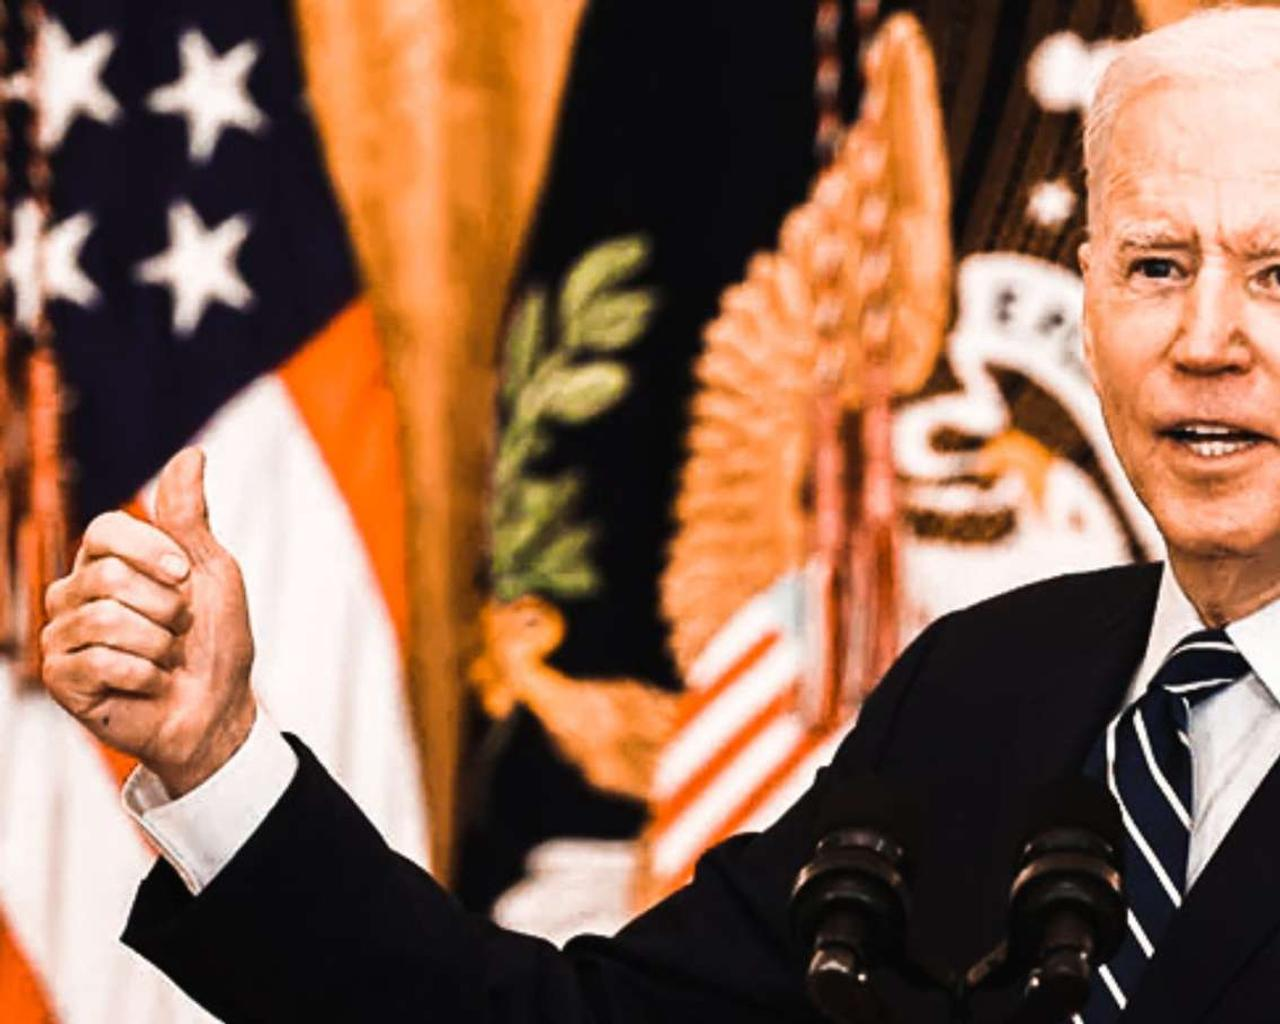 200 million doses of vaccines administered by April 20: Joe Biden's new goal